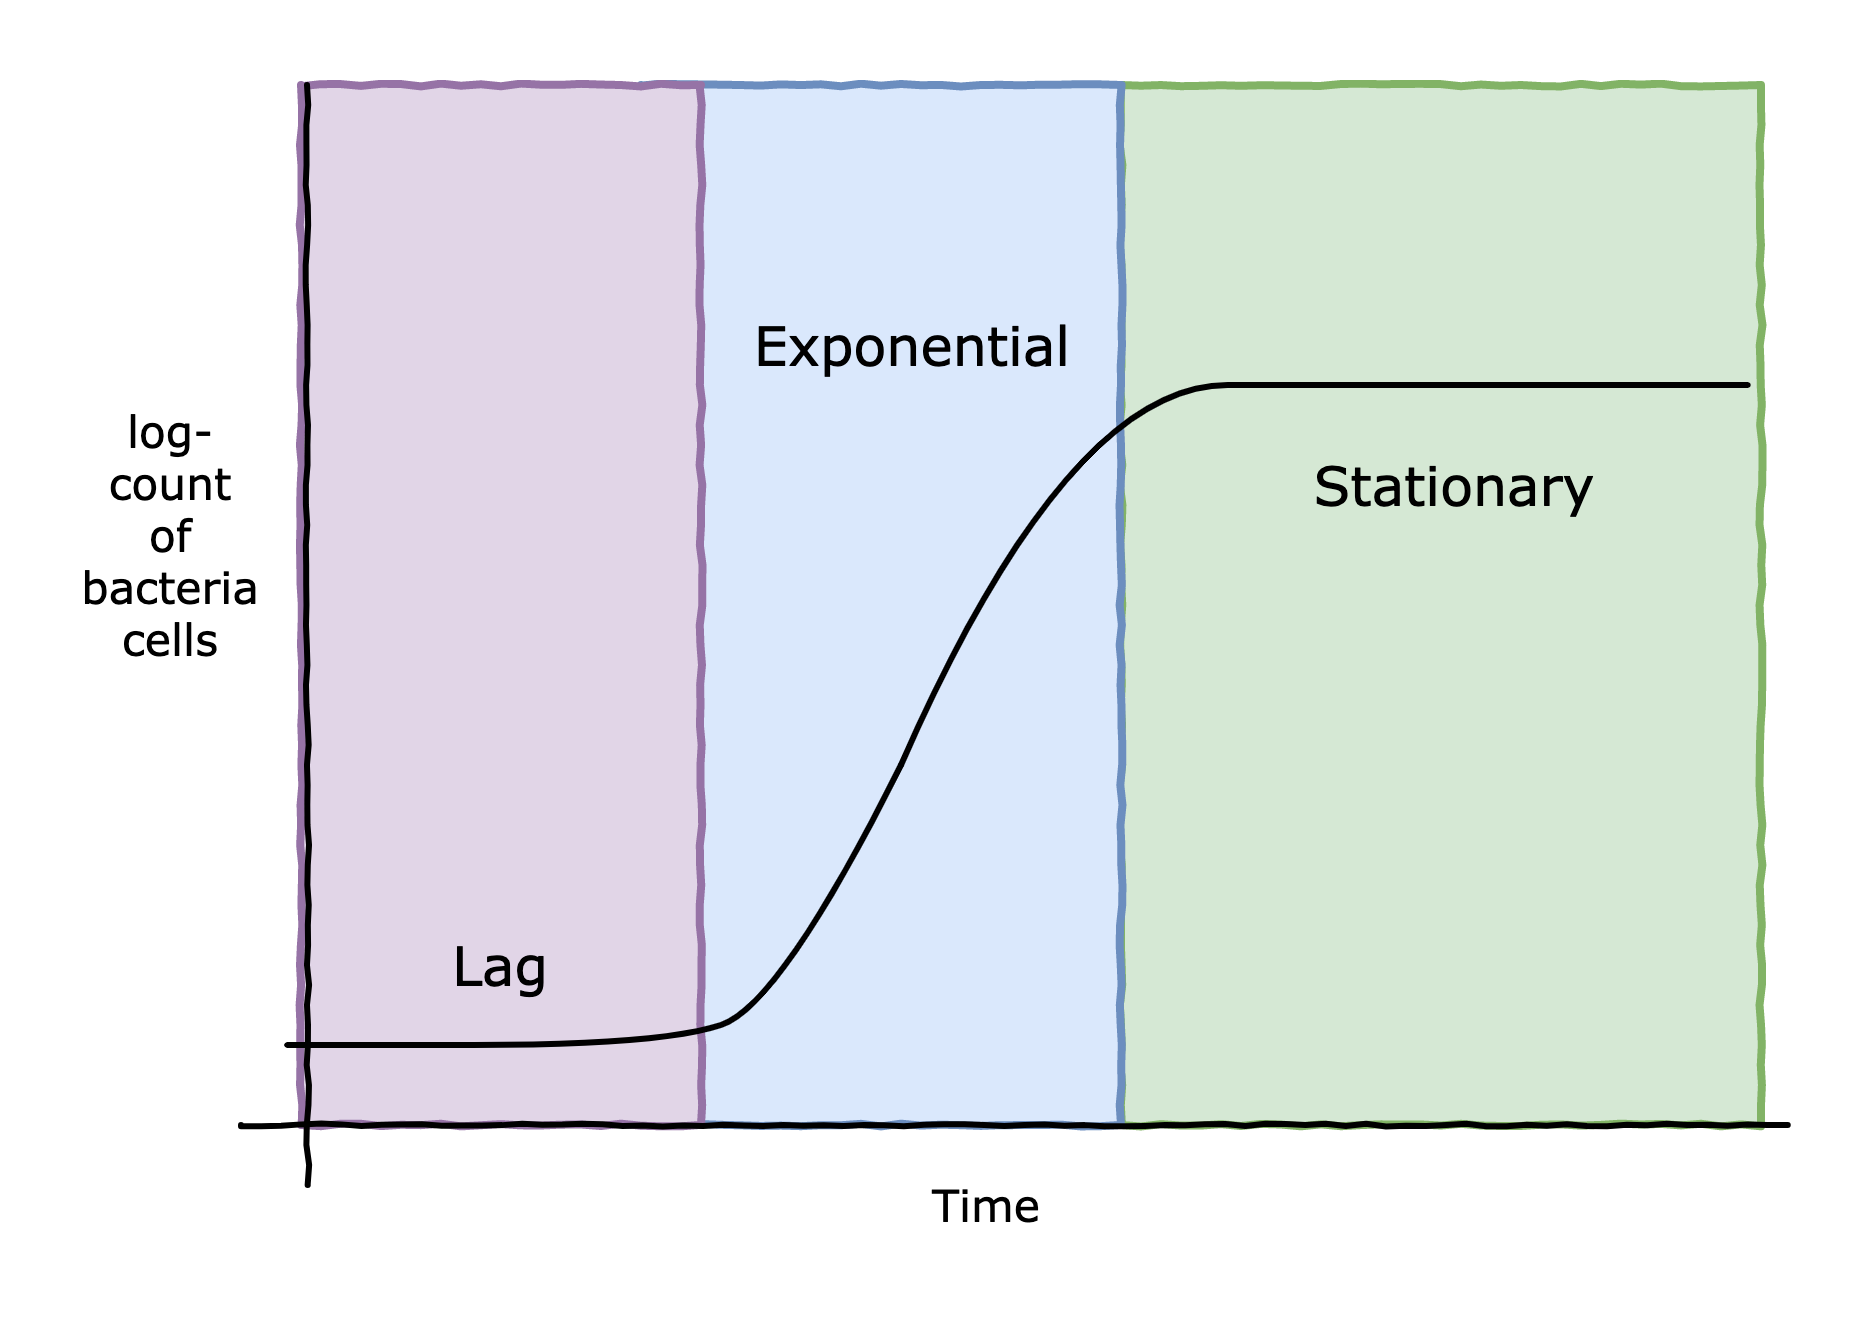 growth phase bacteria lag log exponential stationary